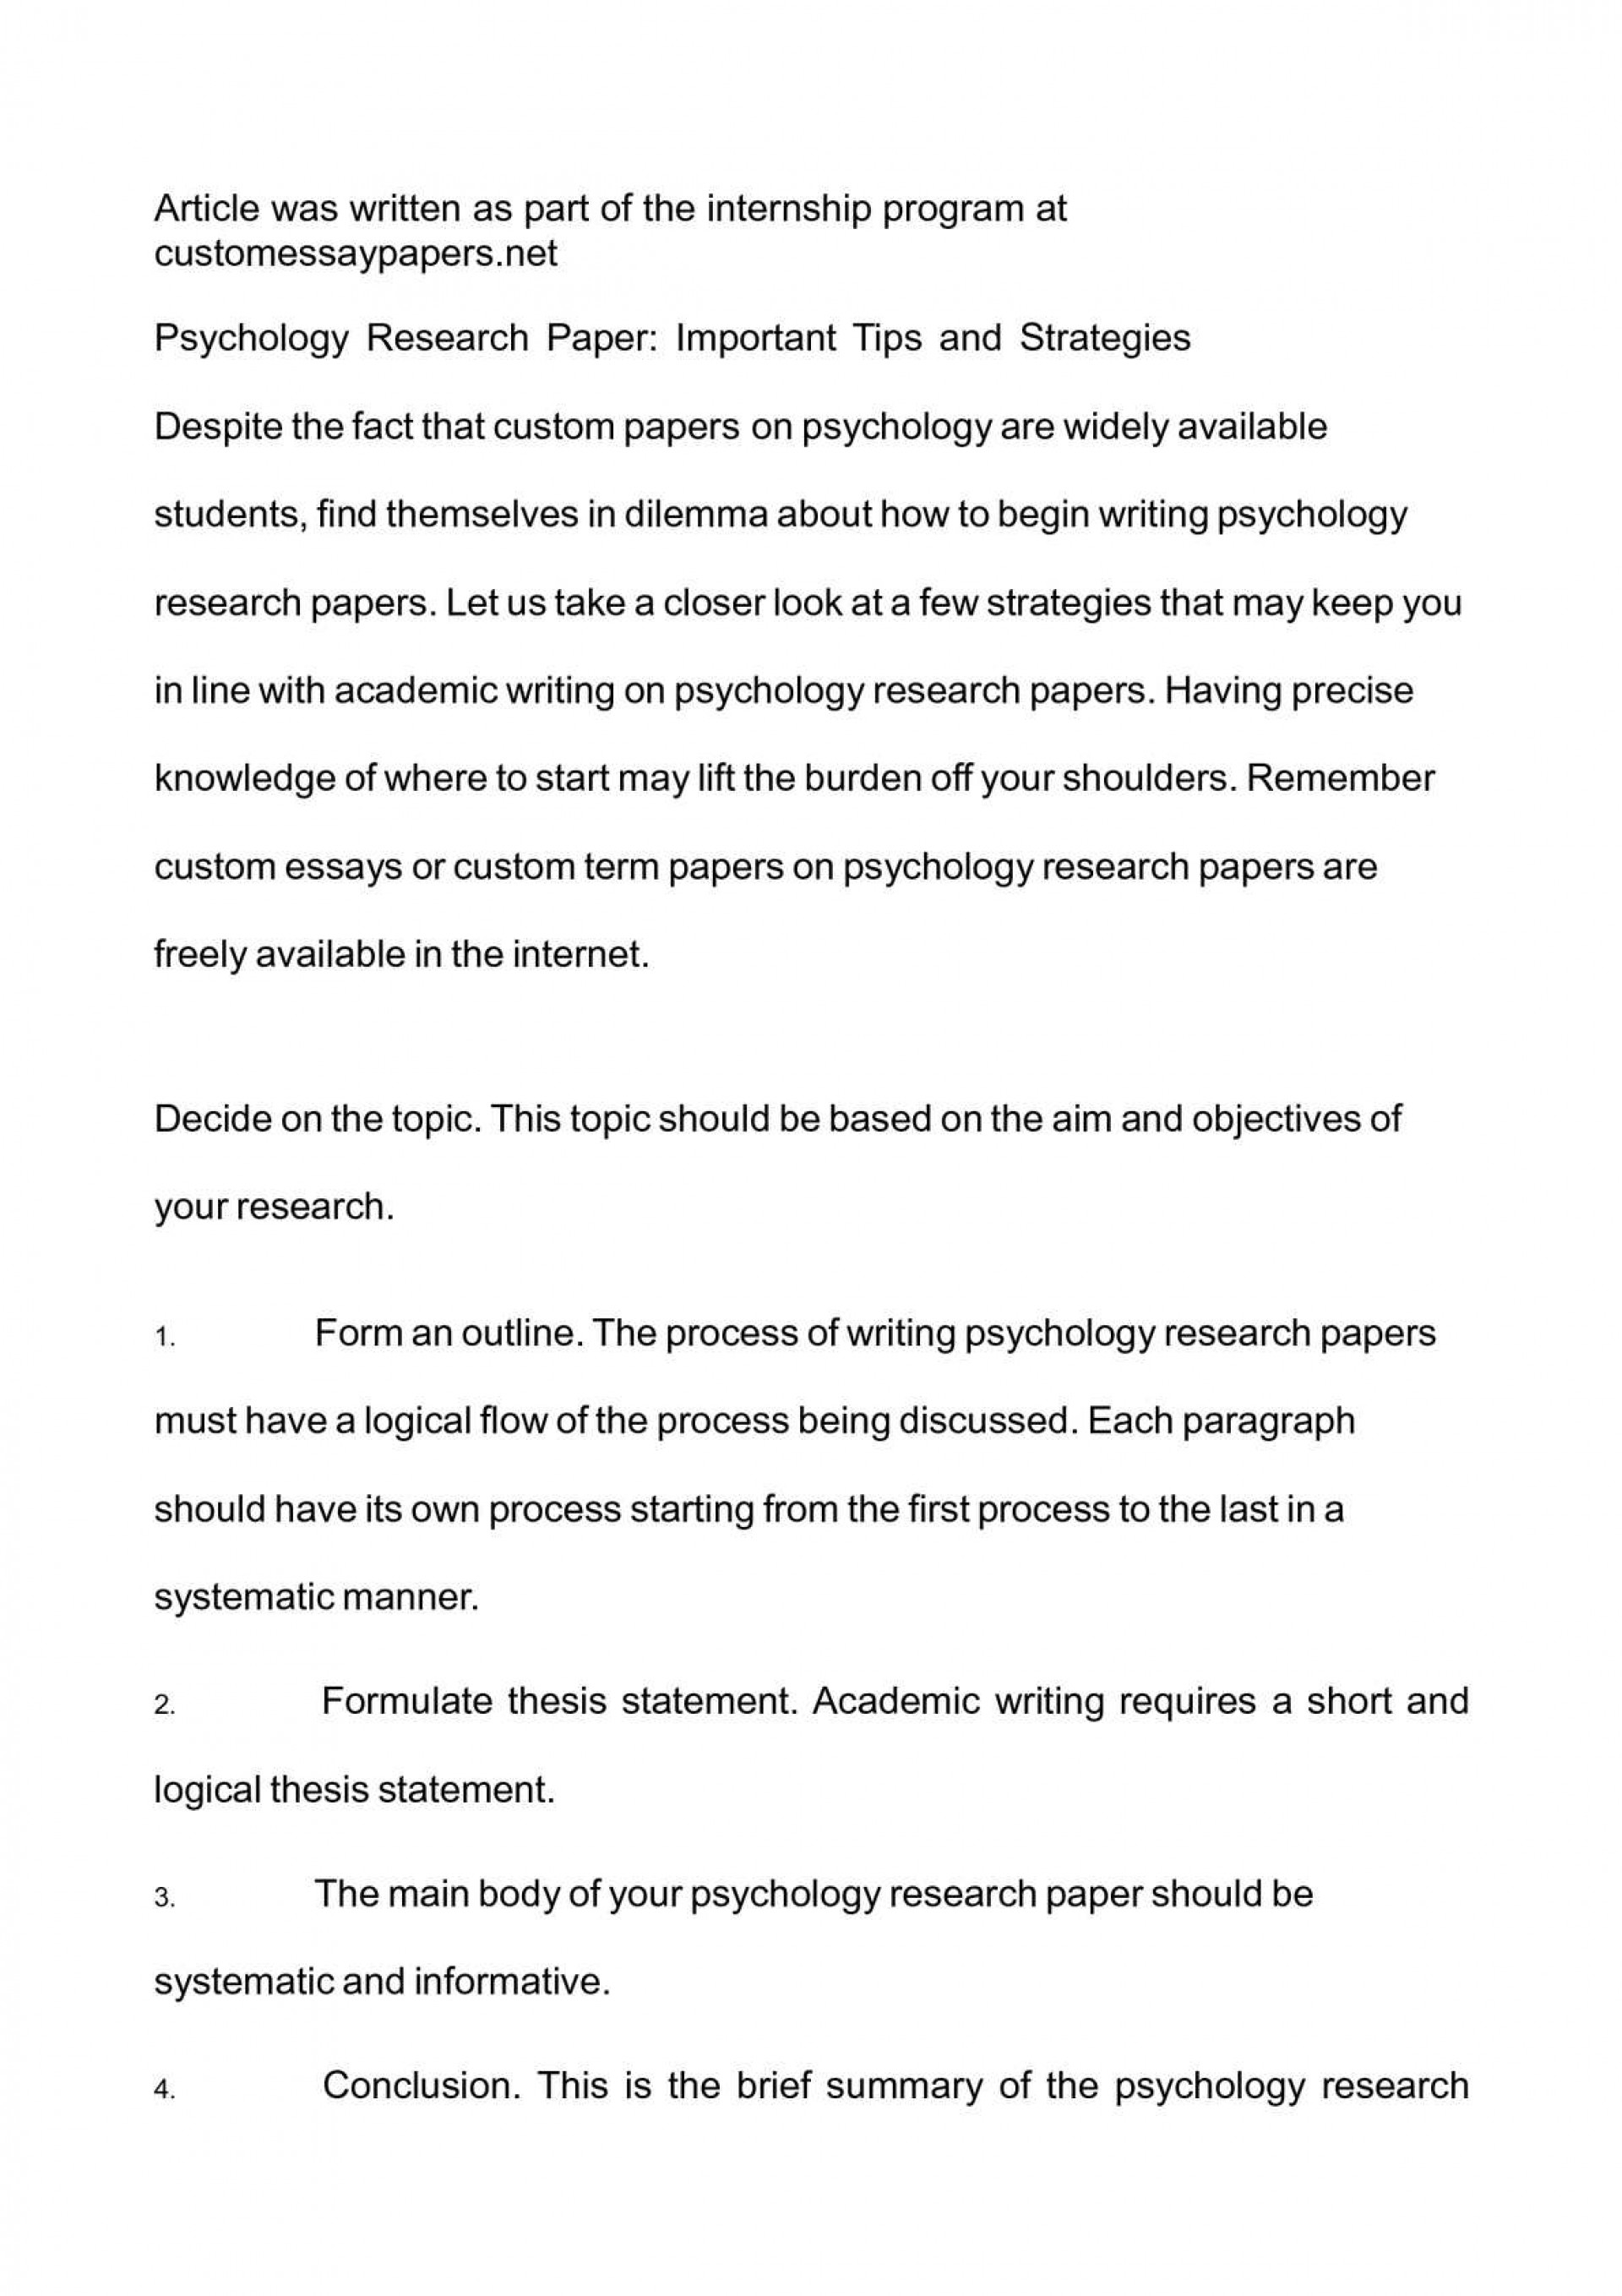 017 P1 Research Paper Psychology Topics Awesome List Topic Ideas 1920